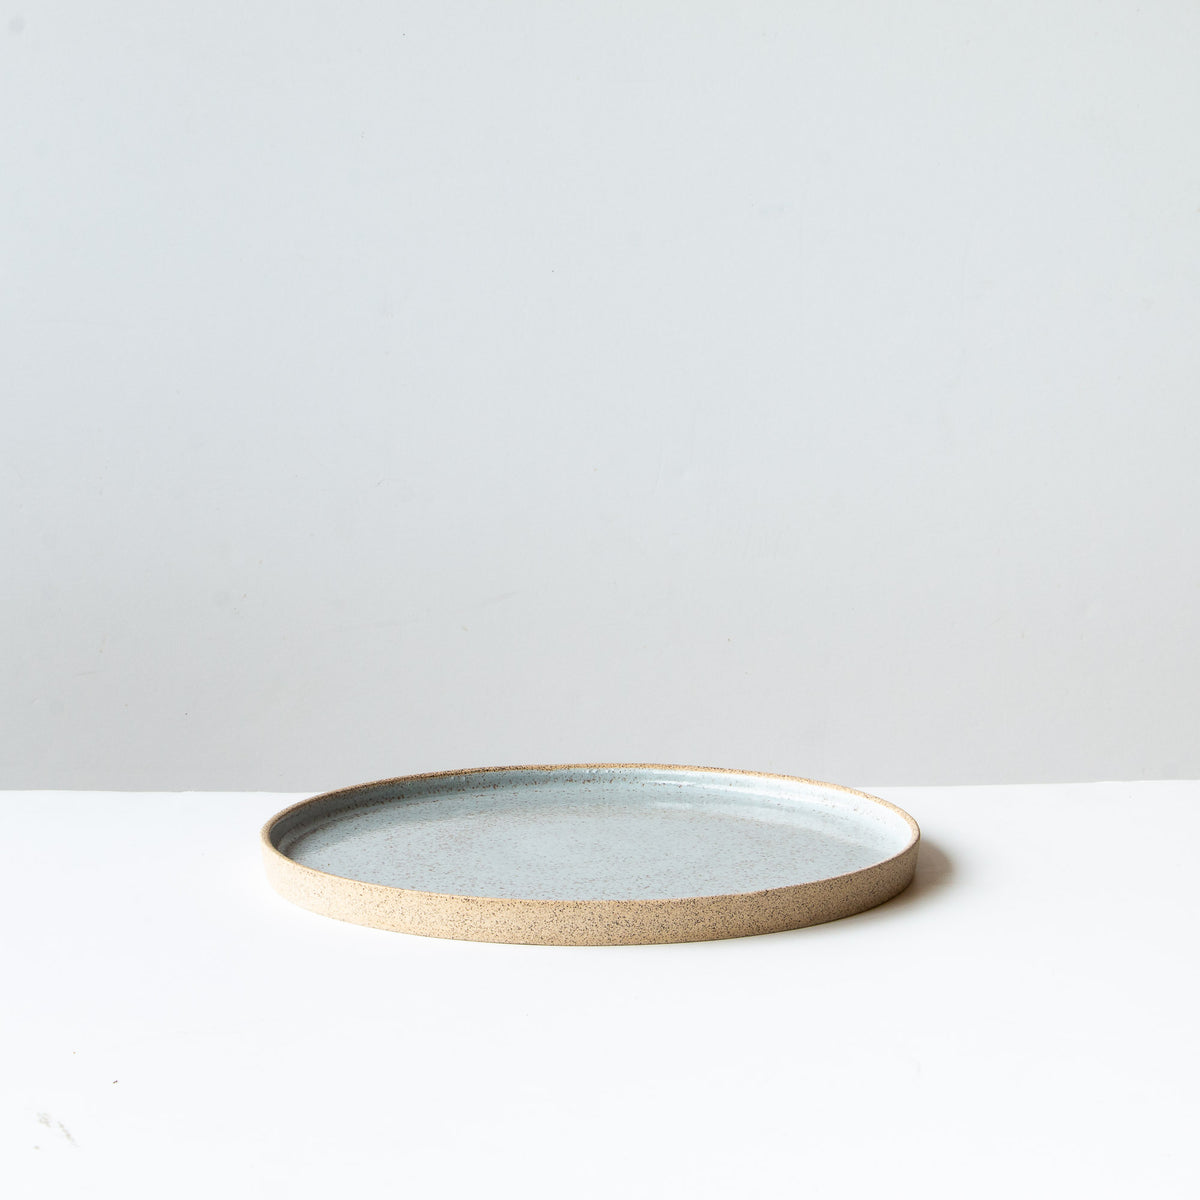 Profile View - Large Speckled Stoneware Plate - Pale Blue Glaze - Sold by Chic & Basta